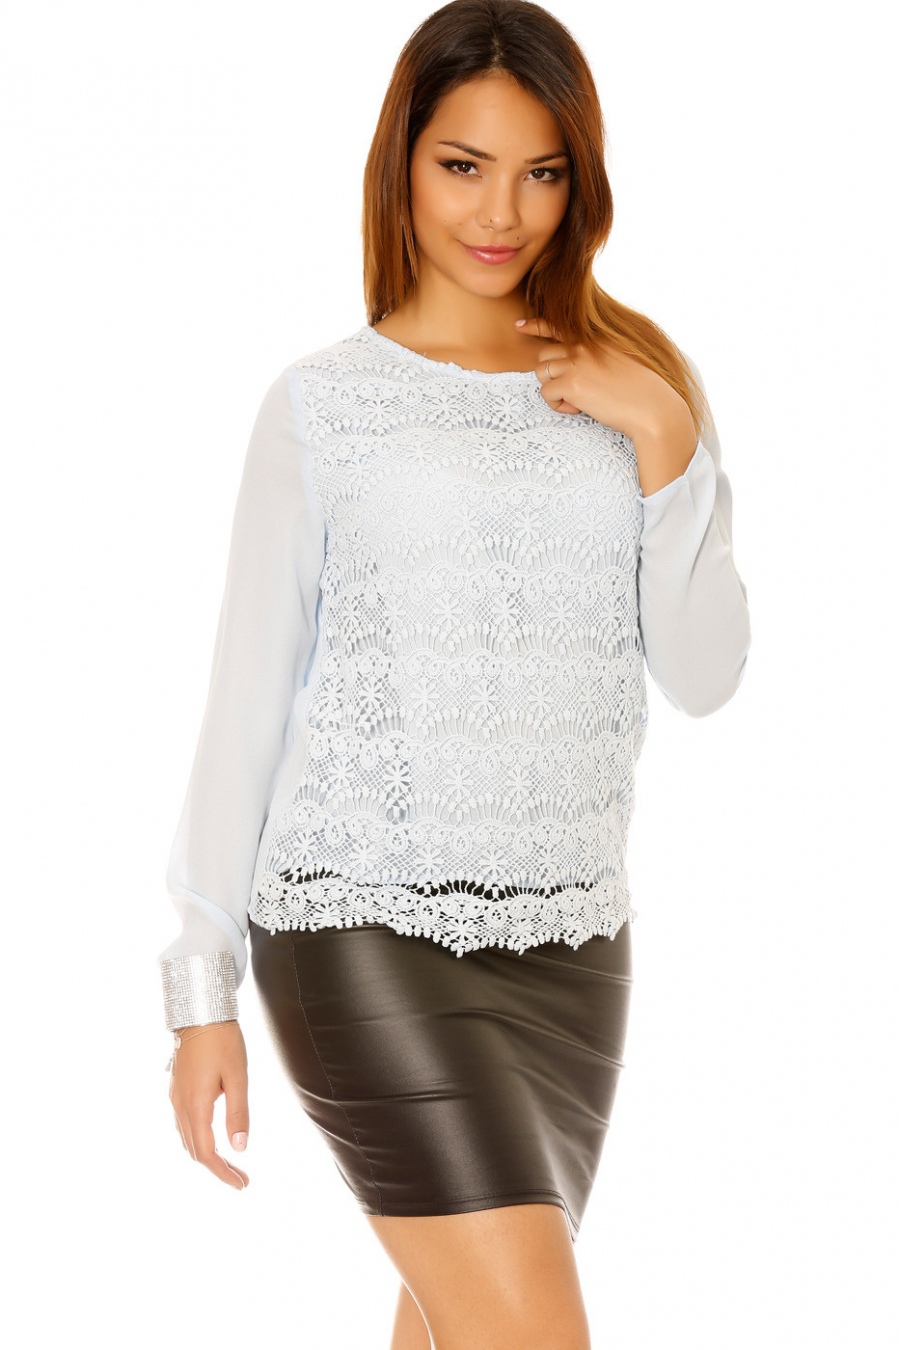 Long sleeve top with lined lace at the front. Women's fashion F6363